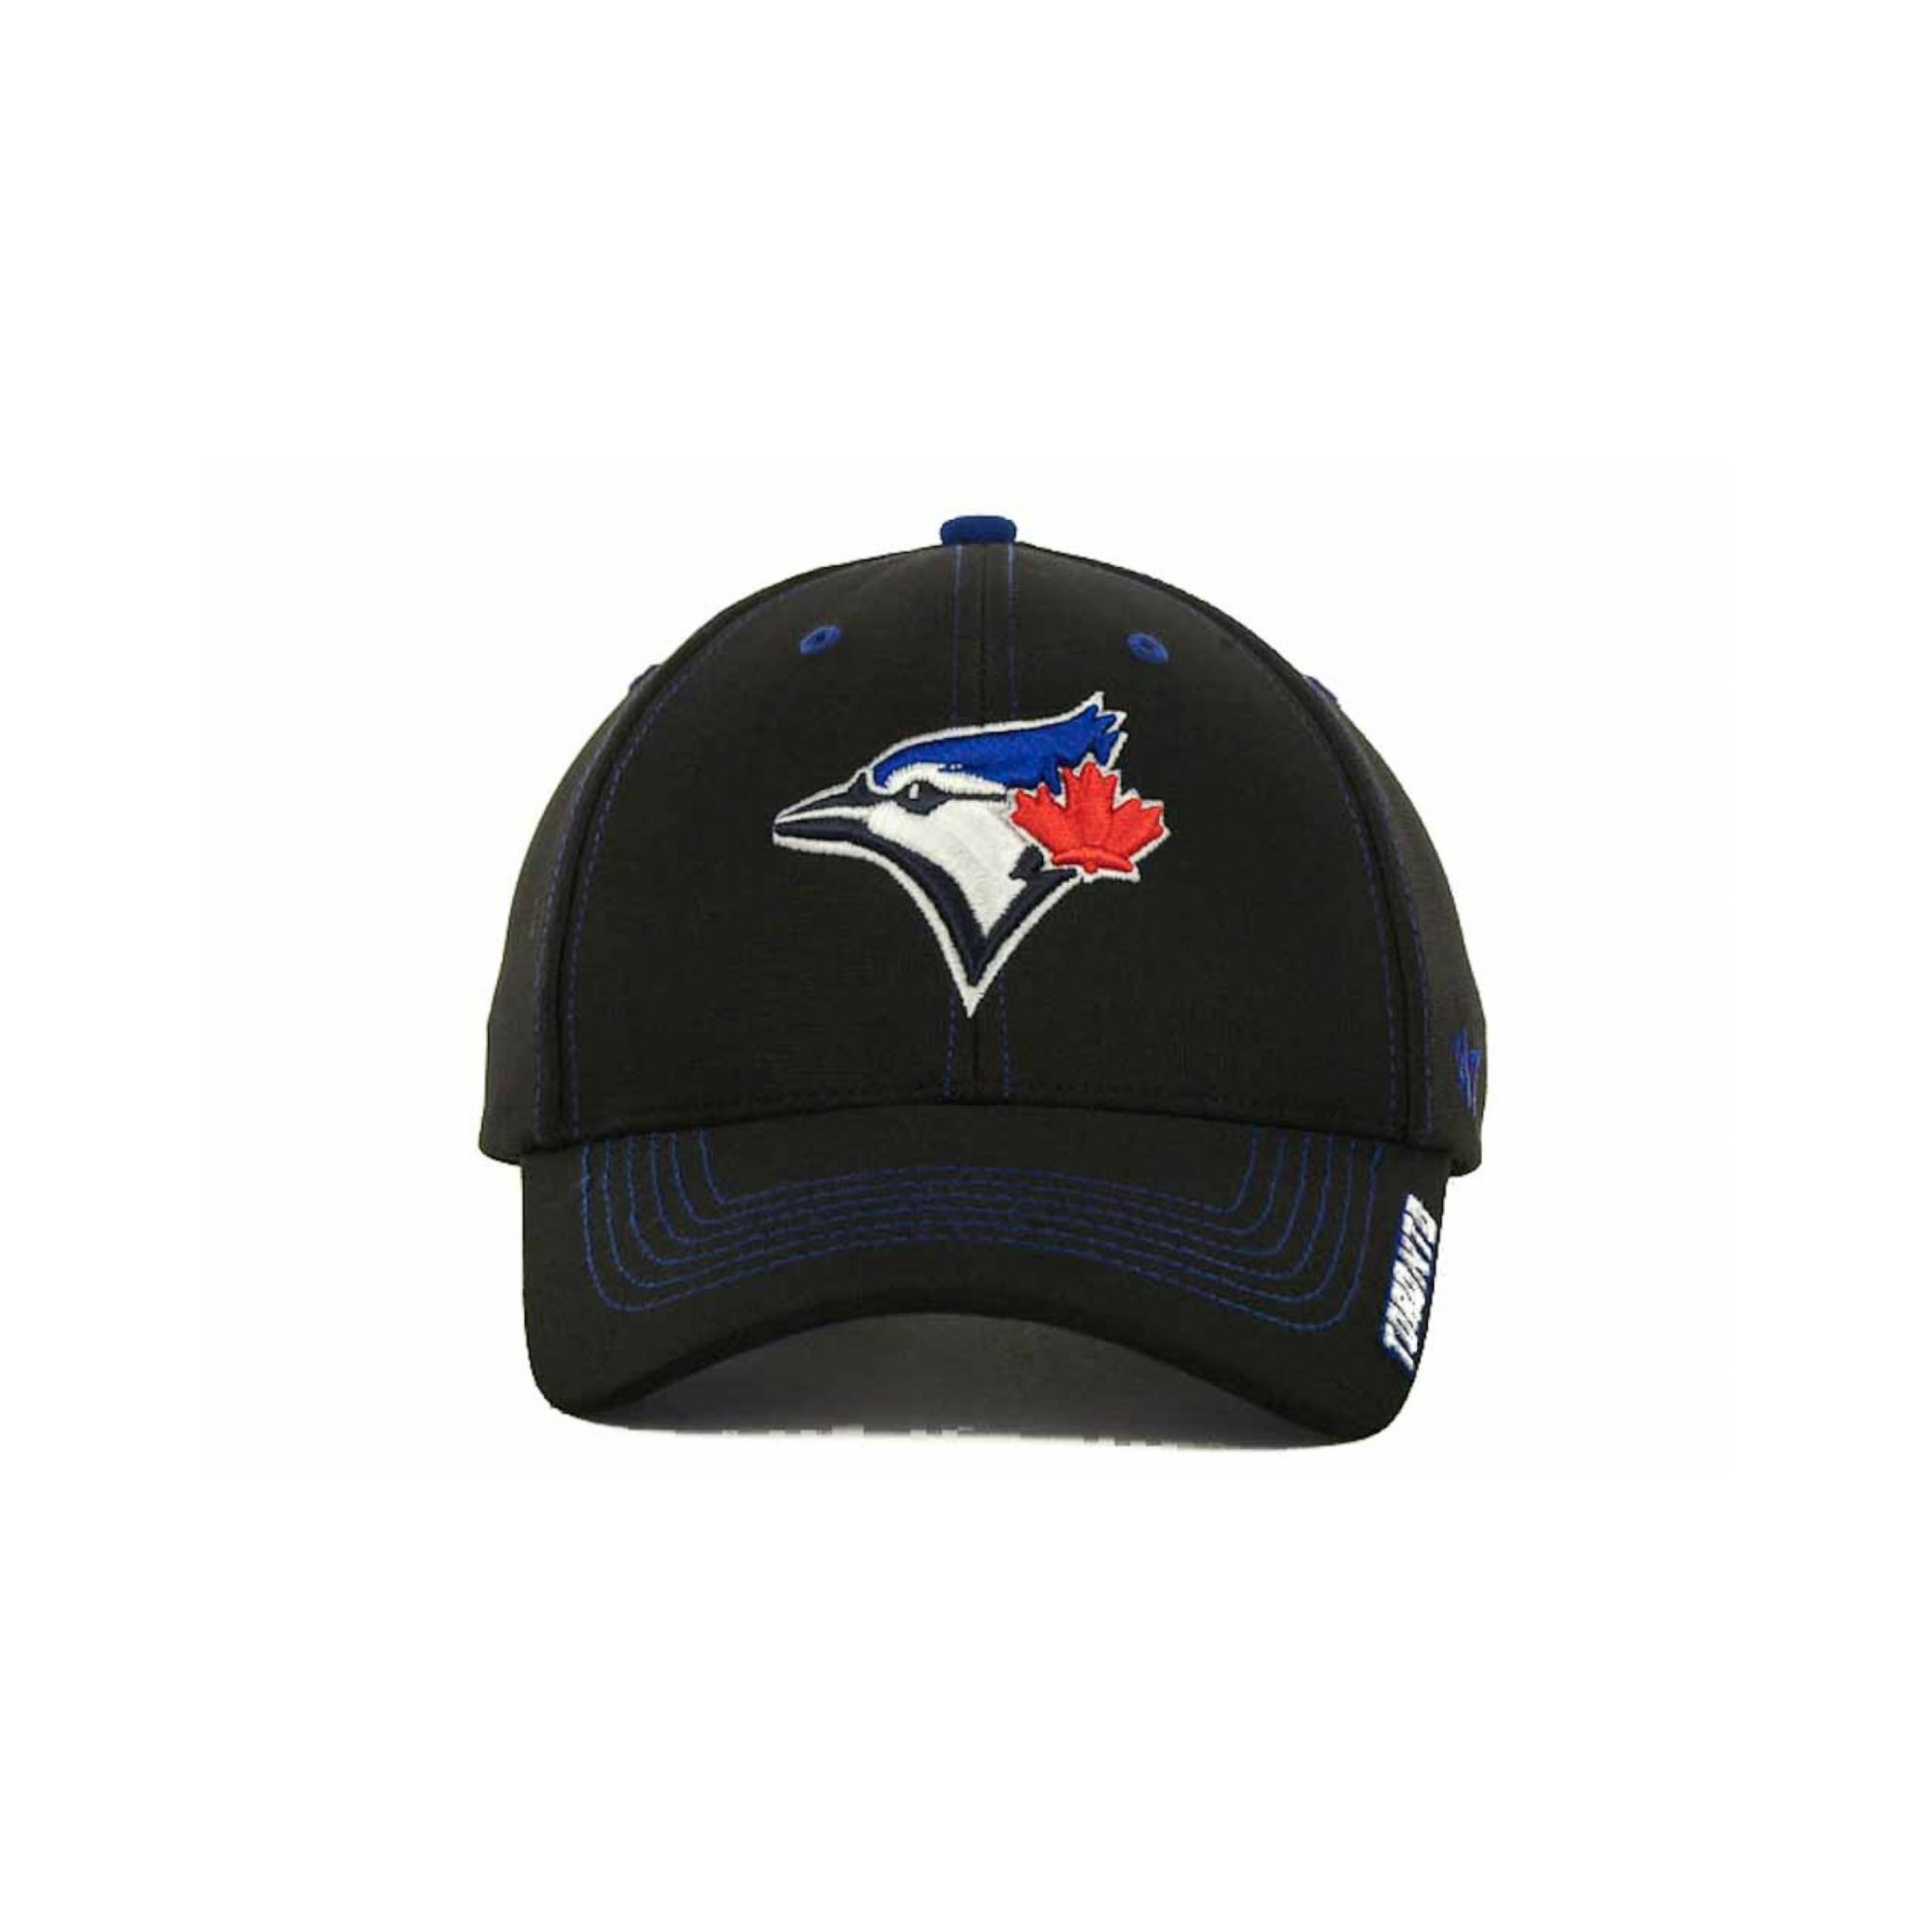 lowest price ecf39 a9db8 ... purchase gallery. previously sold at macys mens baseball caps mens team  hats d241c c6b41 promo code for toronto blue jays 47 brand ...